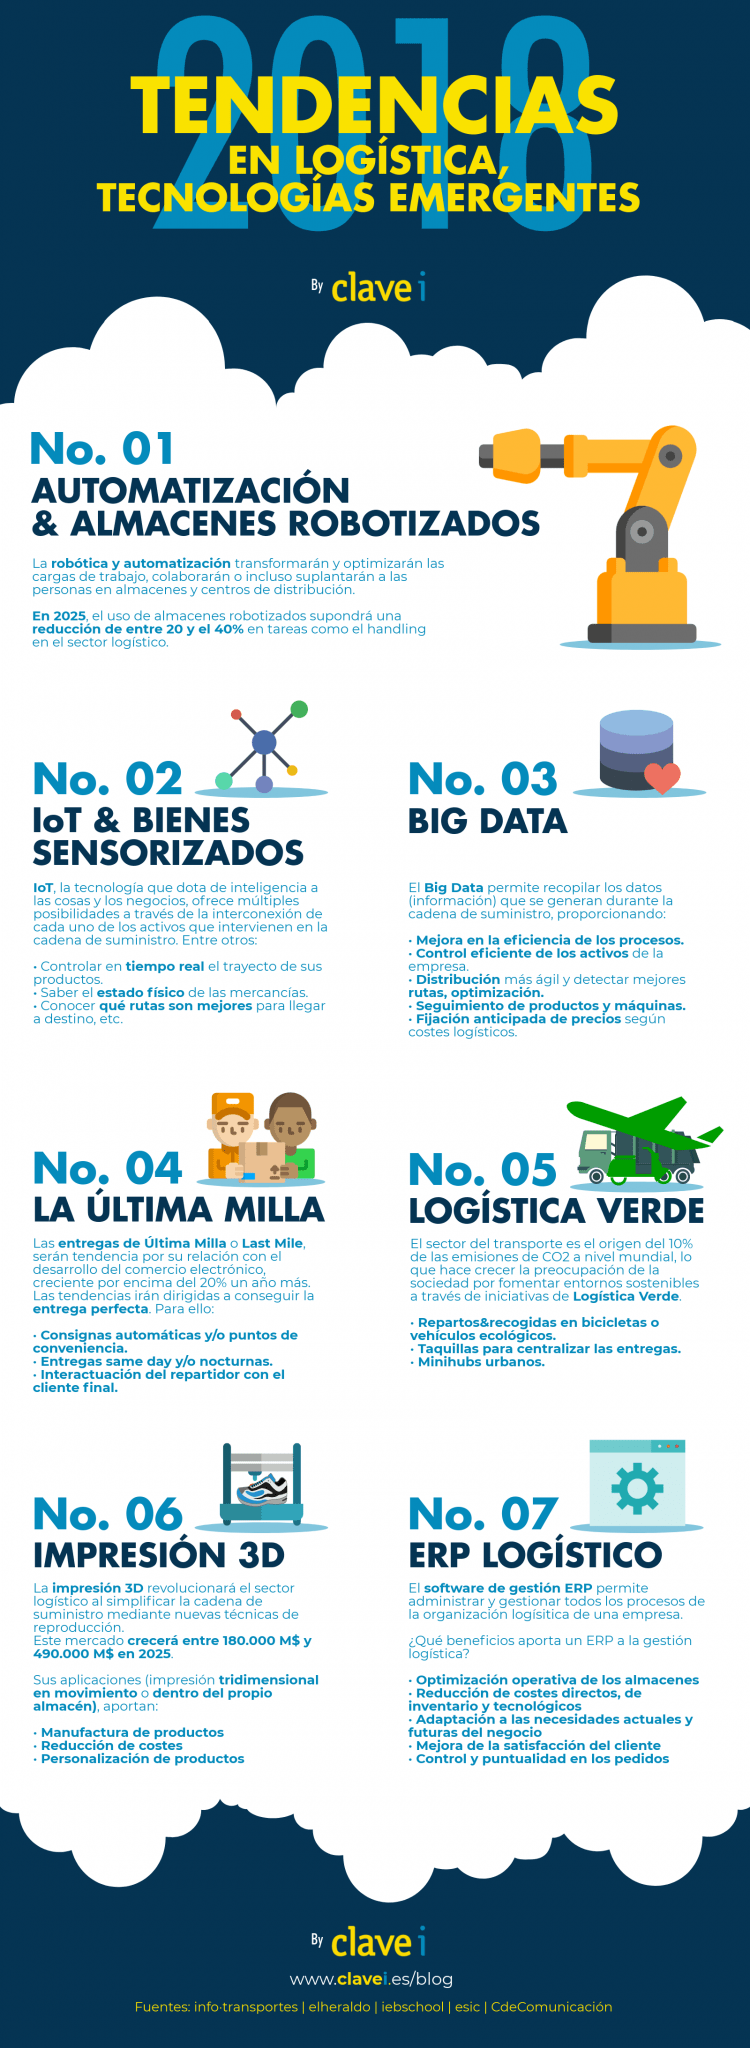 infografia-tendencias-logistica-2018